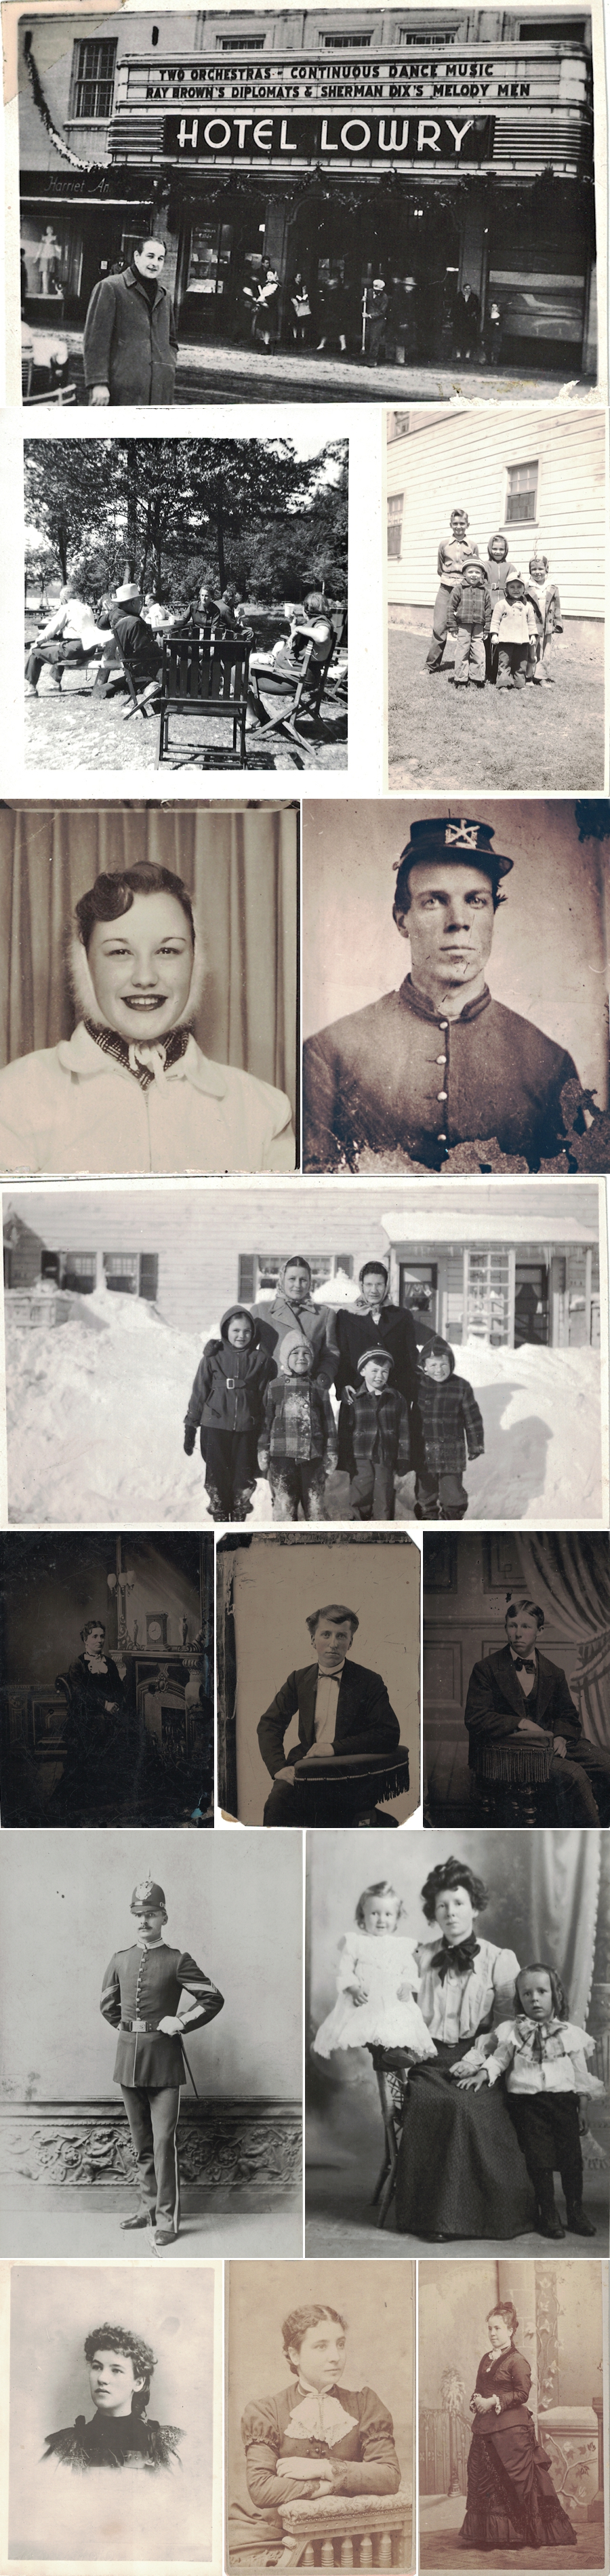 restoration and archival photography services Jonathan Betz Photography Colorado Springs Photographer 1